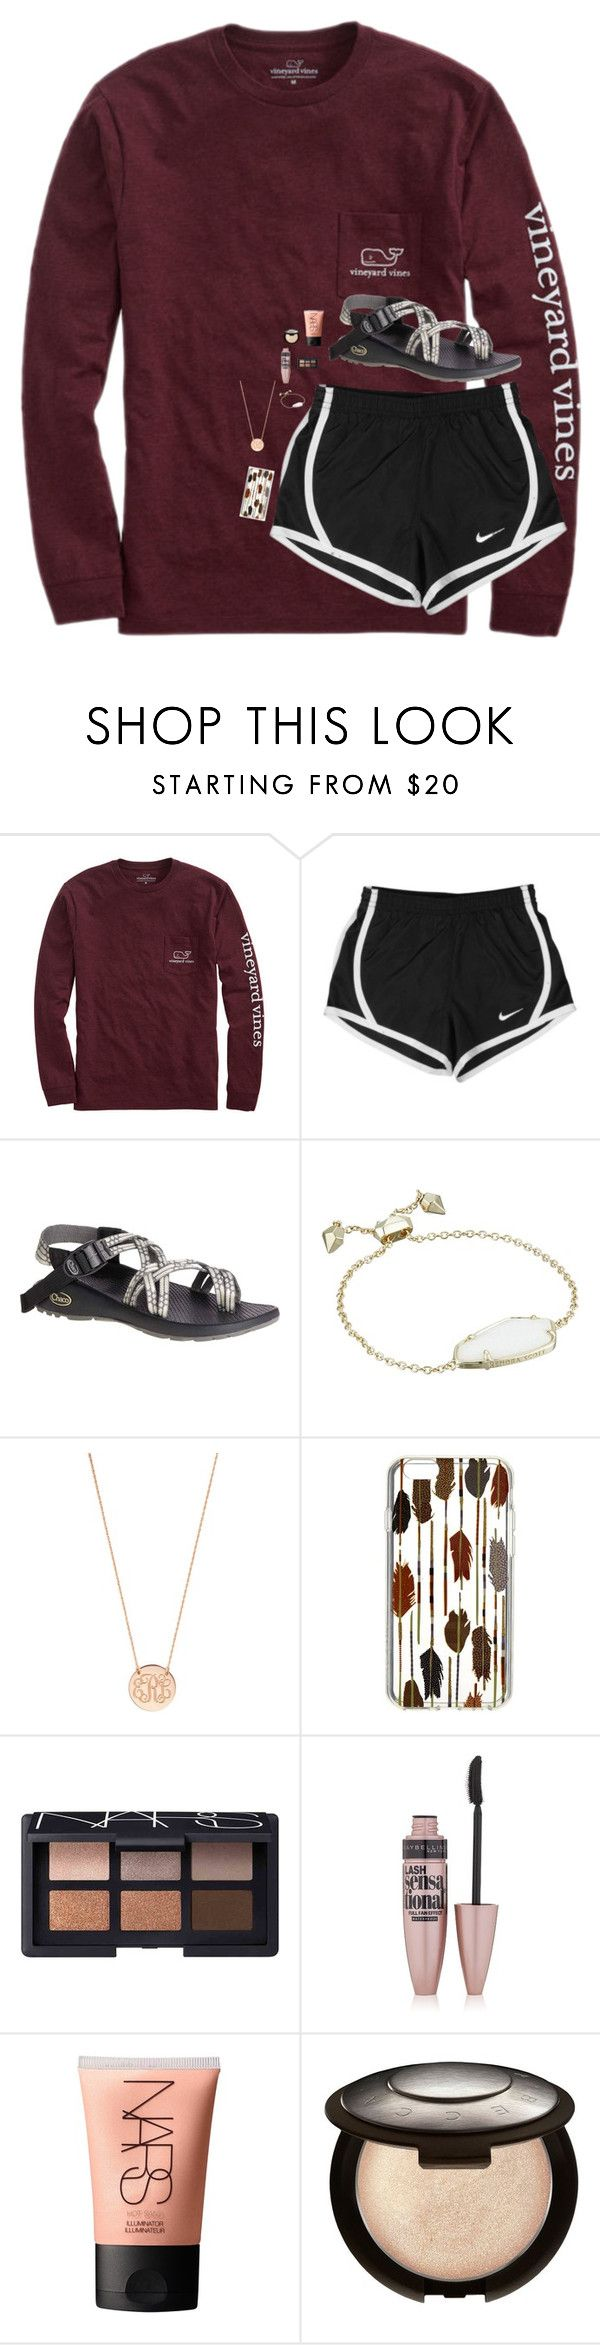 """""""What are y'all being for Halloween? """" by beautygirl480 ❤ liked on Polyvore featuring Vineyard Vines, NIKE, Chaco, Kendra Scott, BaubleBar, Vera Bradley, NARS Cosmetics, Maybelline and Becca"""